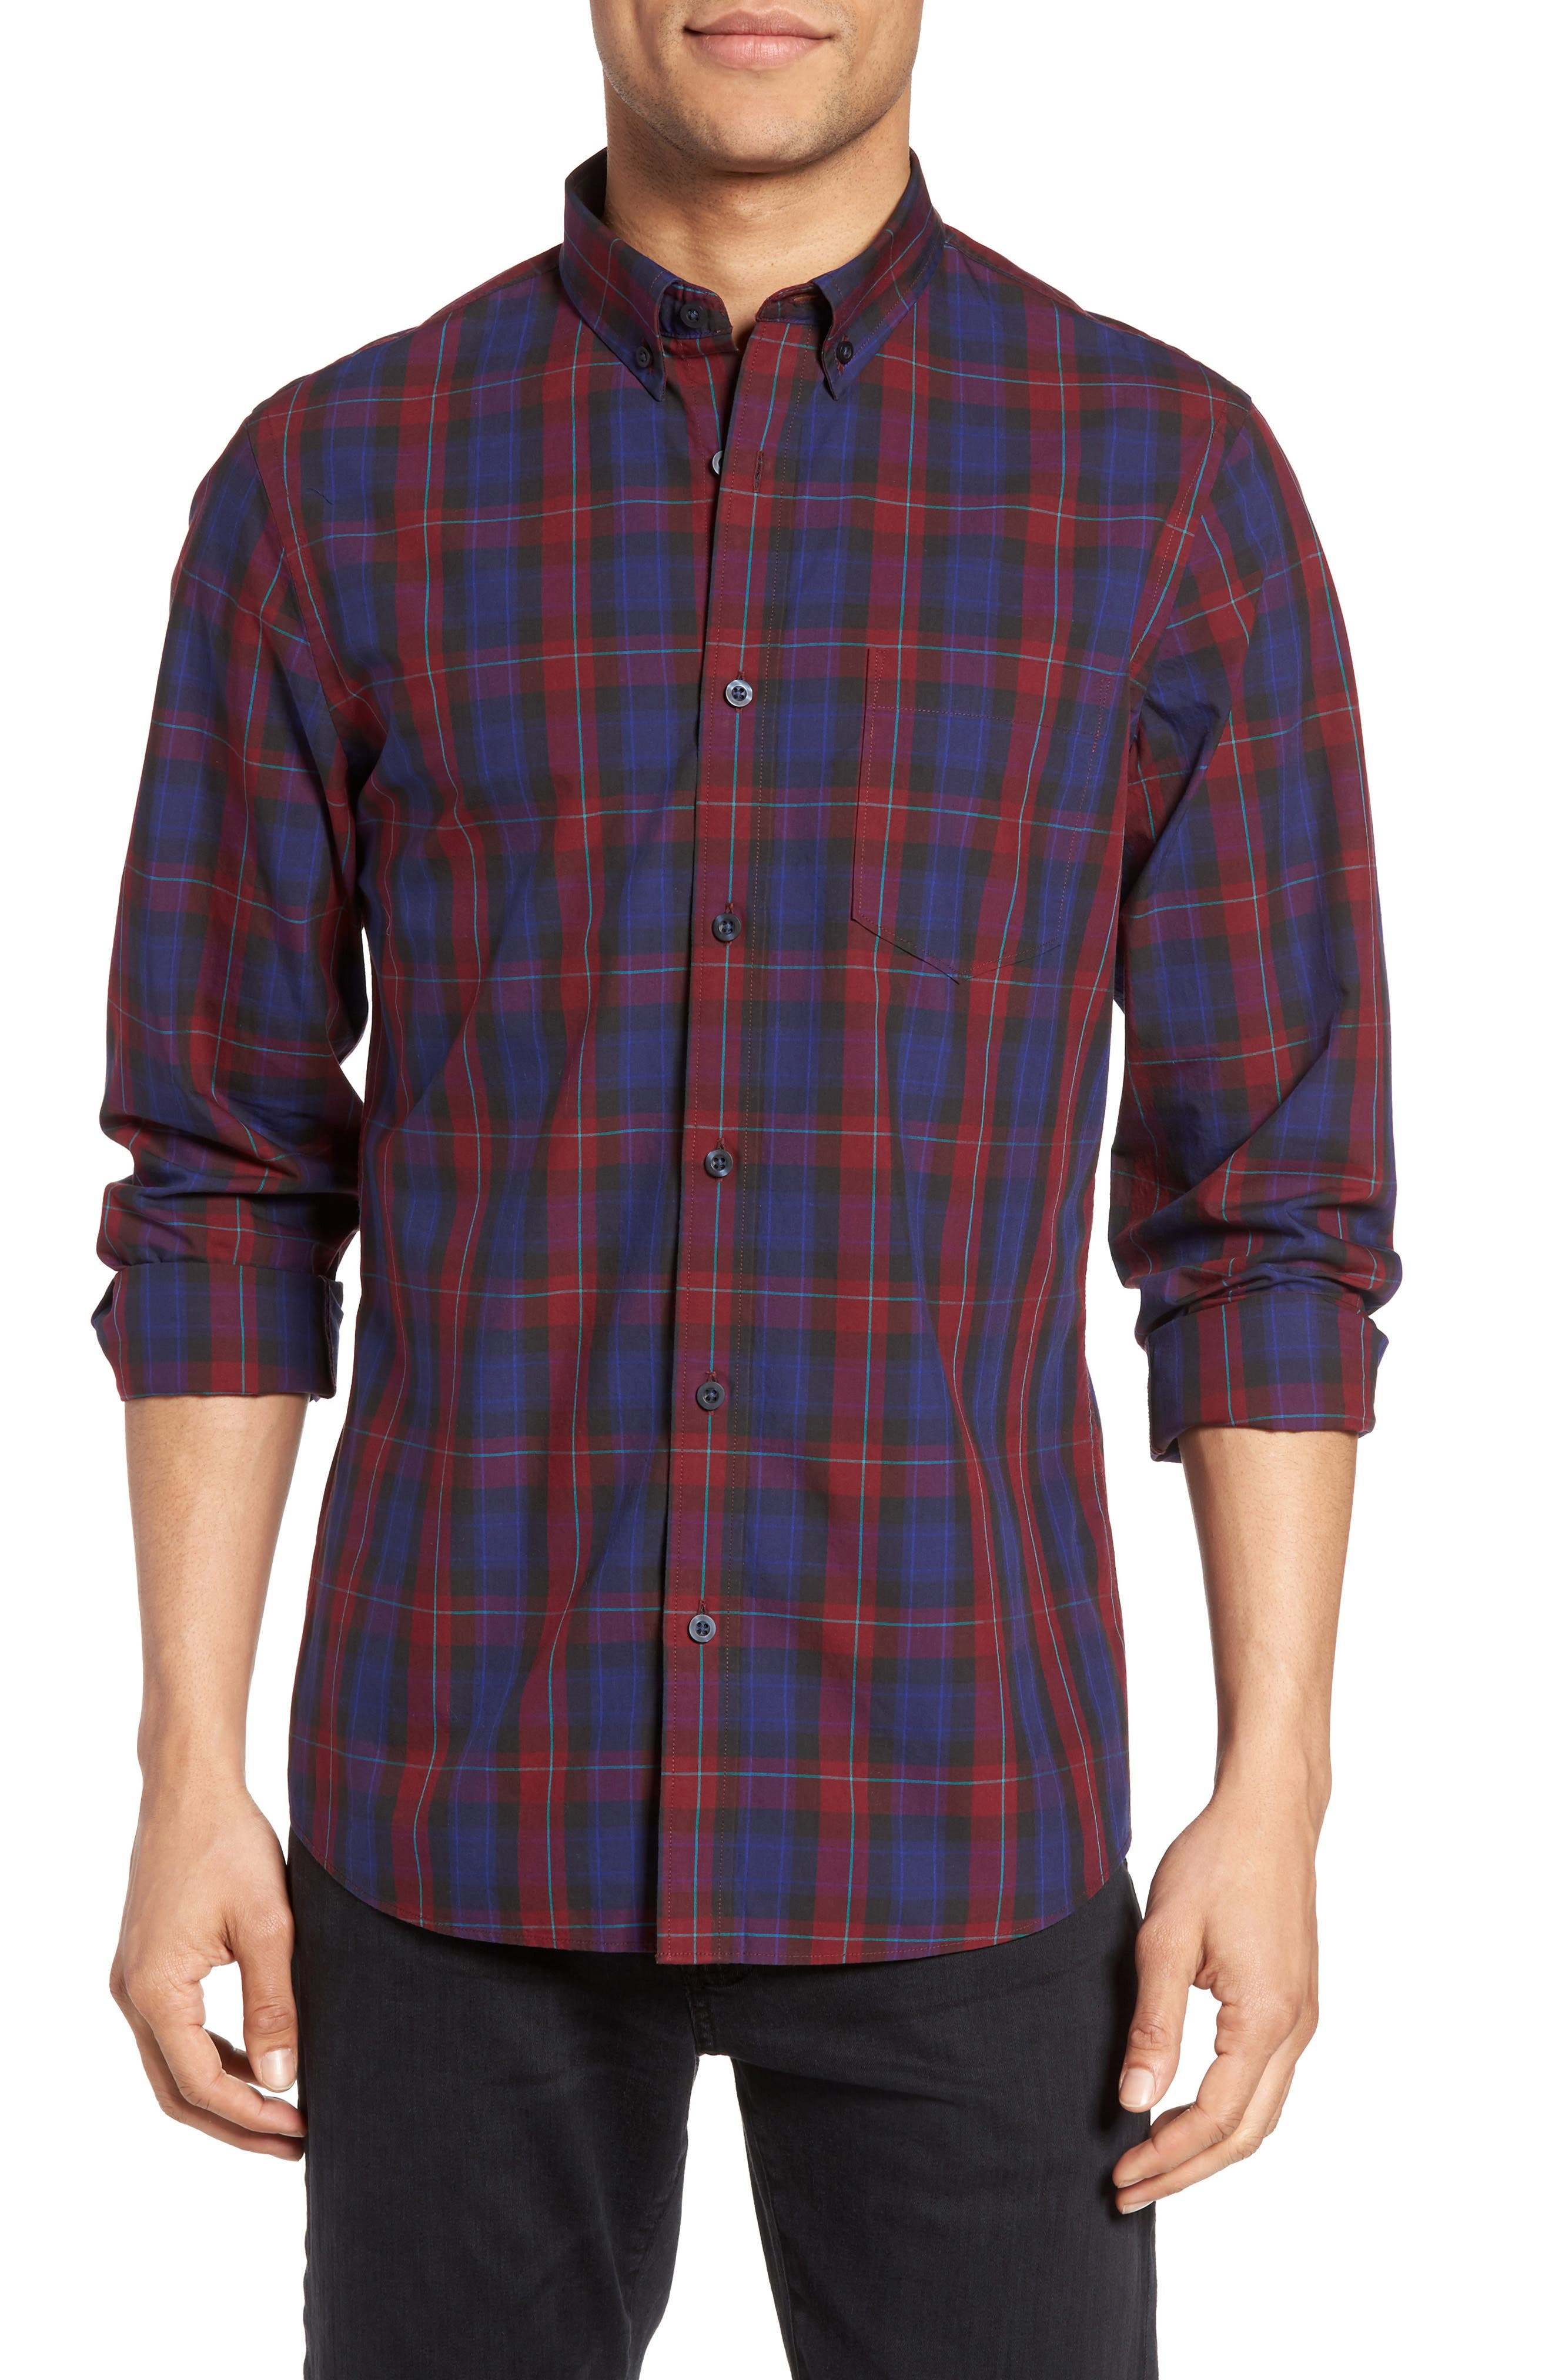 Alternate Image 1 Selected - Nordstrom Men's Shop Slim Fit Plaid Sport Shirt